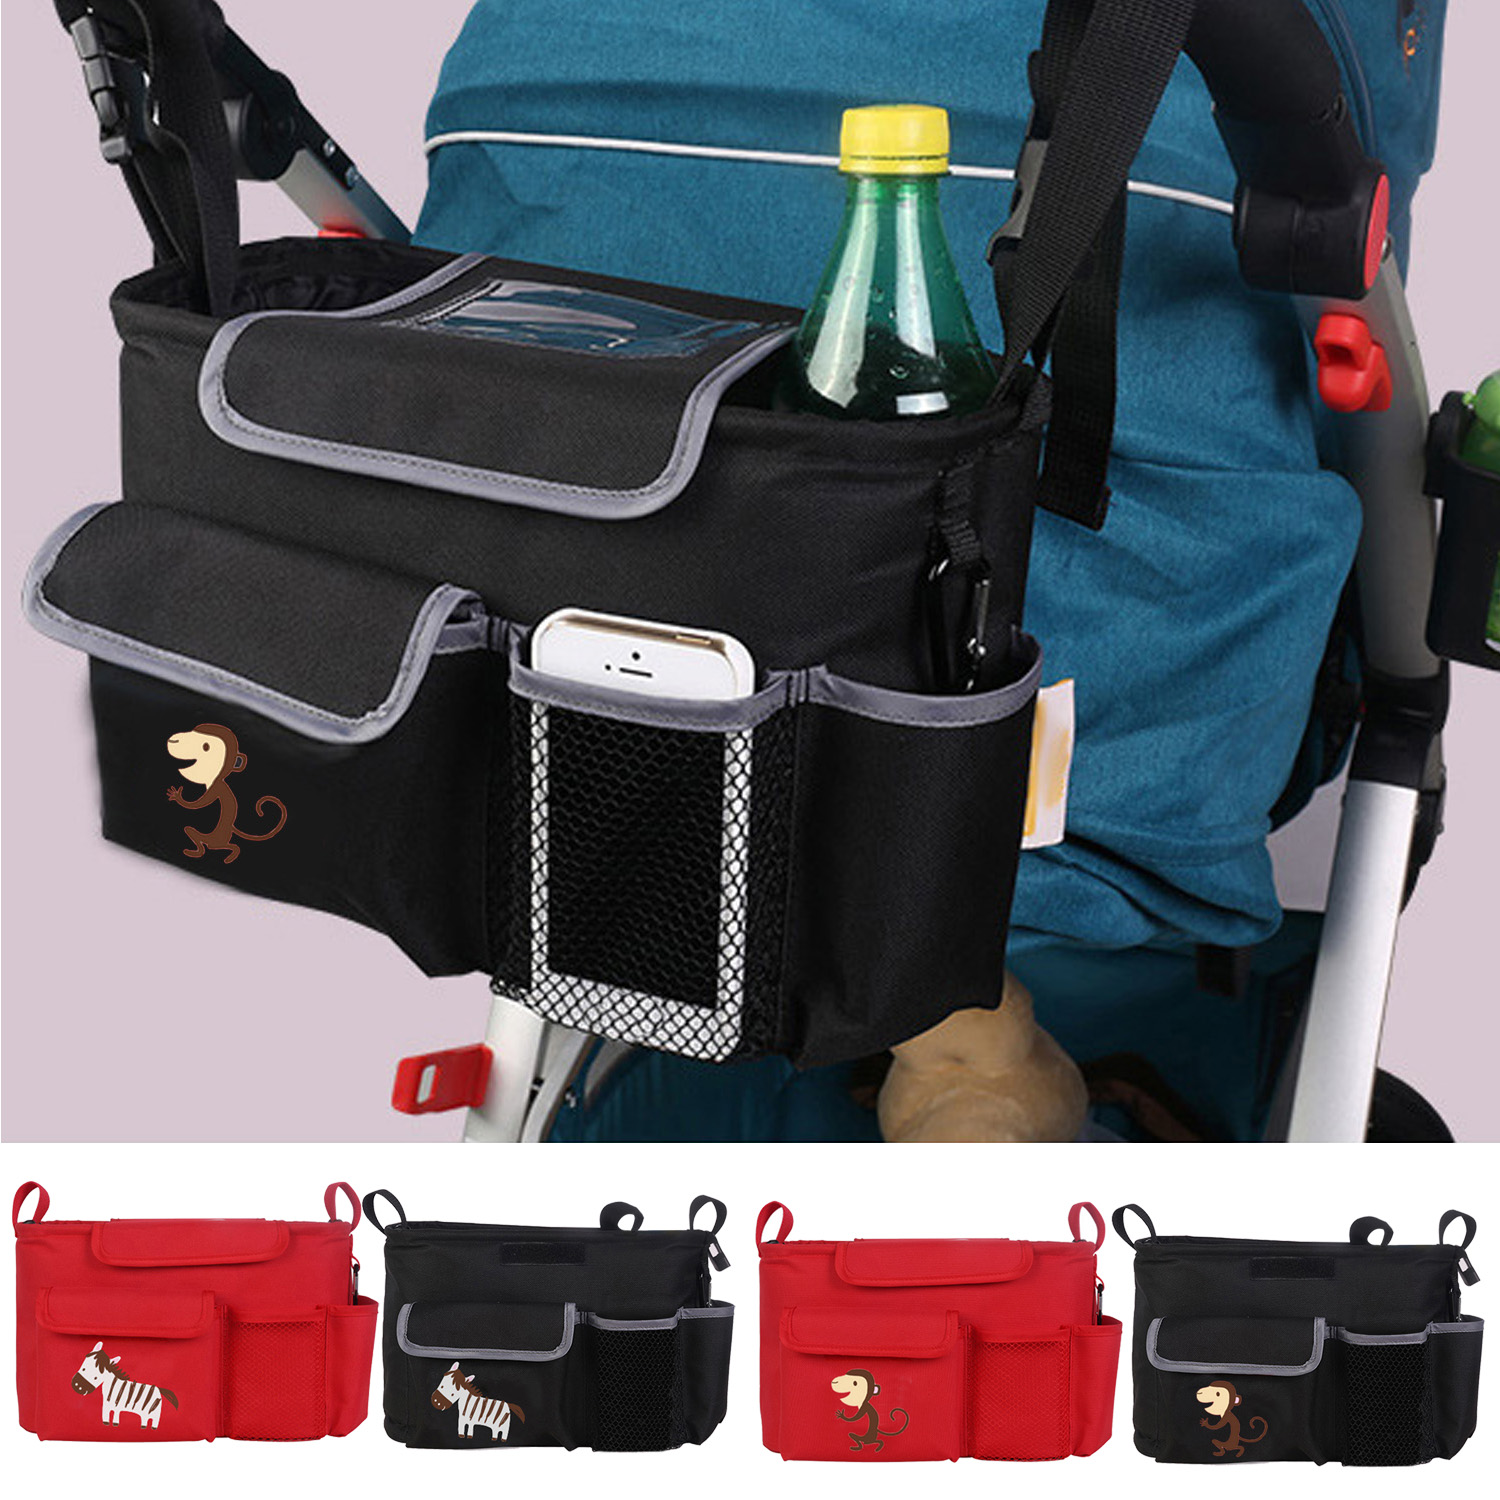 3c005b02cfc3 Buy Portable Baby Stroller Hanging Storage Organizer Bag Large Capacity for  Outdoors Traveling Containing Diapers Milk Bottle Towel Online